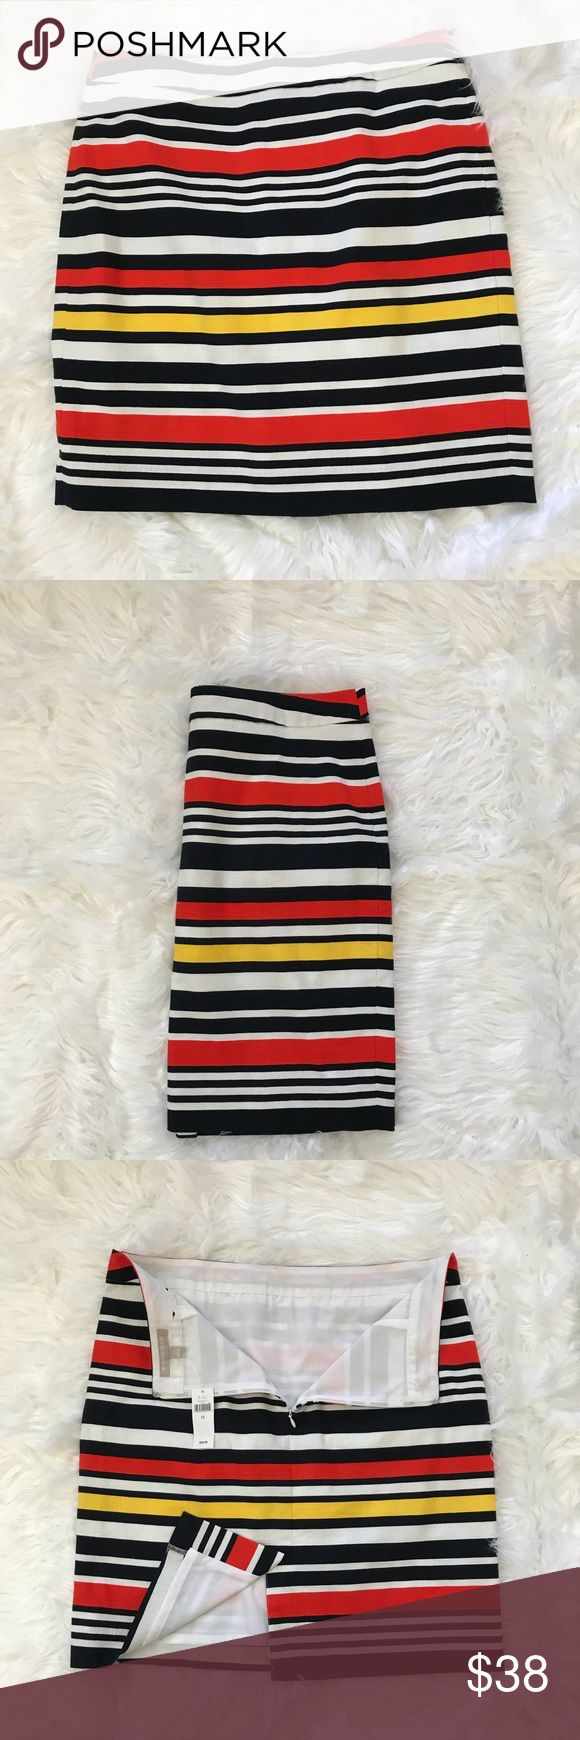 "NWT Banana Republic Factory skirt ✔️Banana Republic Factory striped skirt ✔️Shell: 98% cotton/2% spandex. Lining: 100% polyester.  ✔️Zip/hook closure. Features back slit.  ALL MEASUREMENTS ARE TAKEN LAID FLAT ✂️Waist 17.5"" length 21"" ✔️We ♻️ 📦.  ✔️Offers are encouraged. Bundle to save! 🚫NO TRADES EVER! -11/4- Banana Republic Factory Skirts"